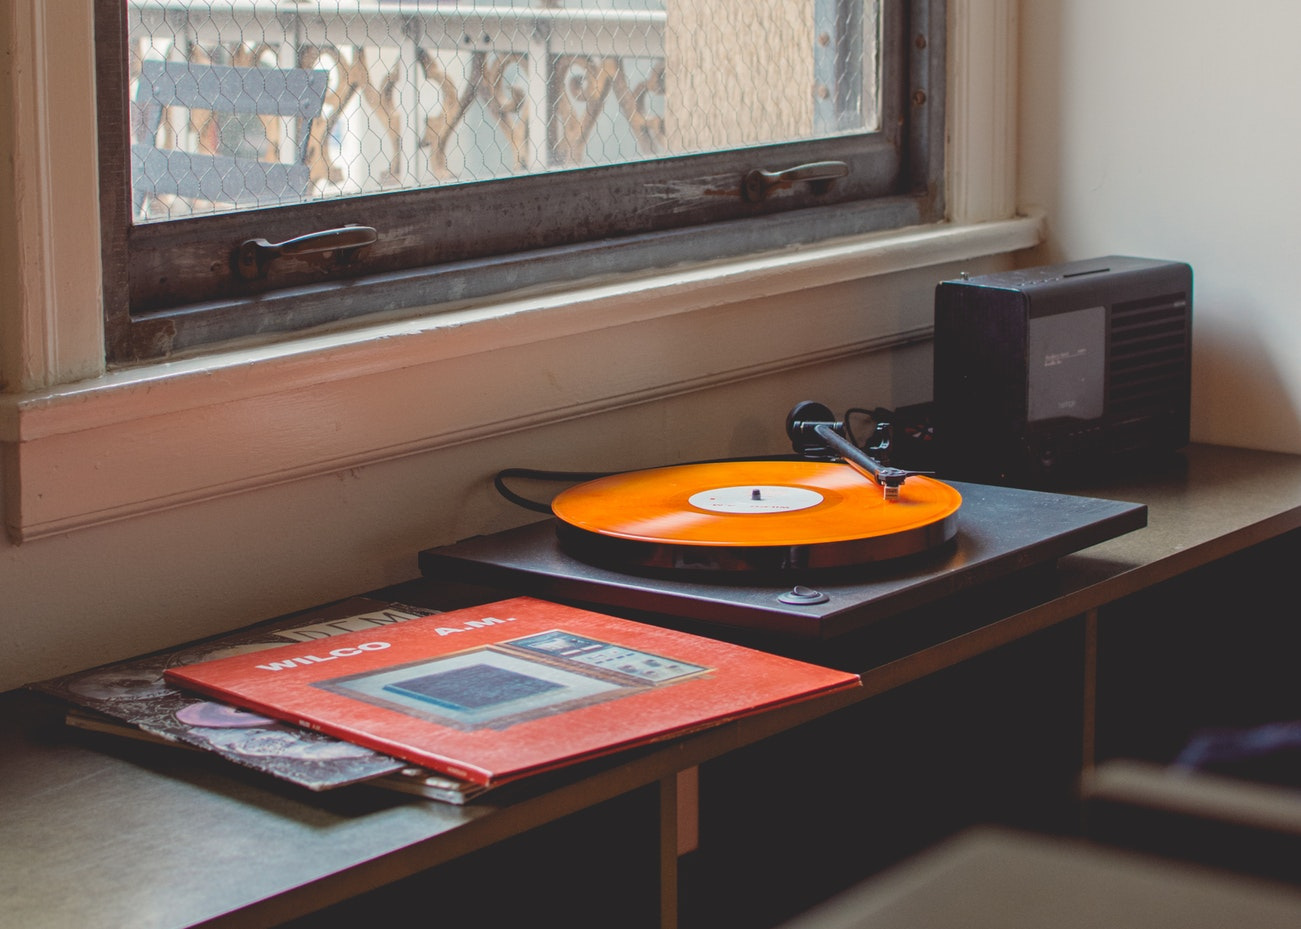 A record player. Music is an alternative form of therapy for seniors